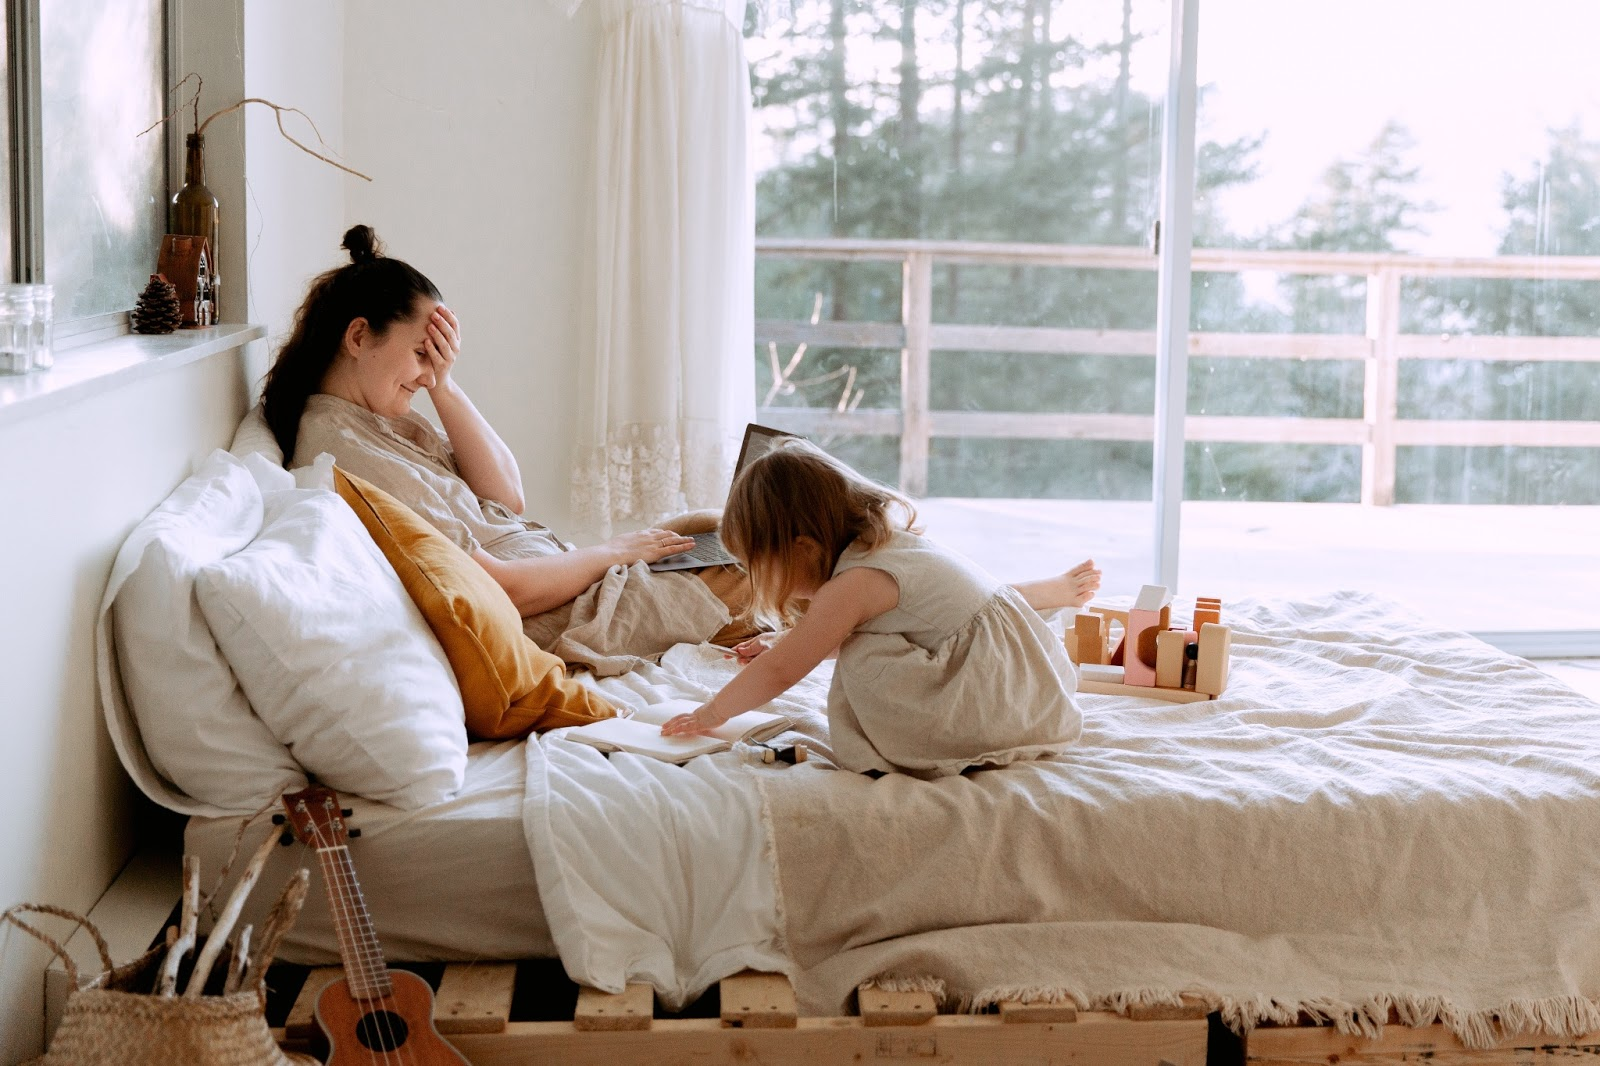 Mother and child relaxing on bed together